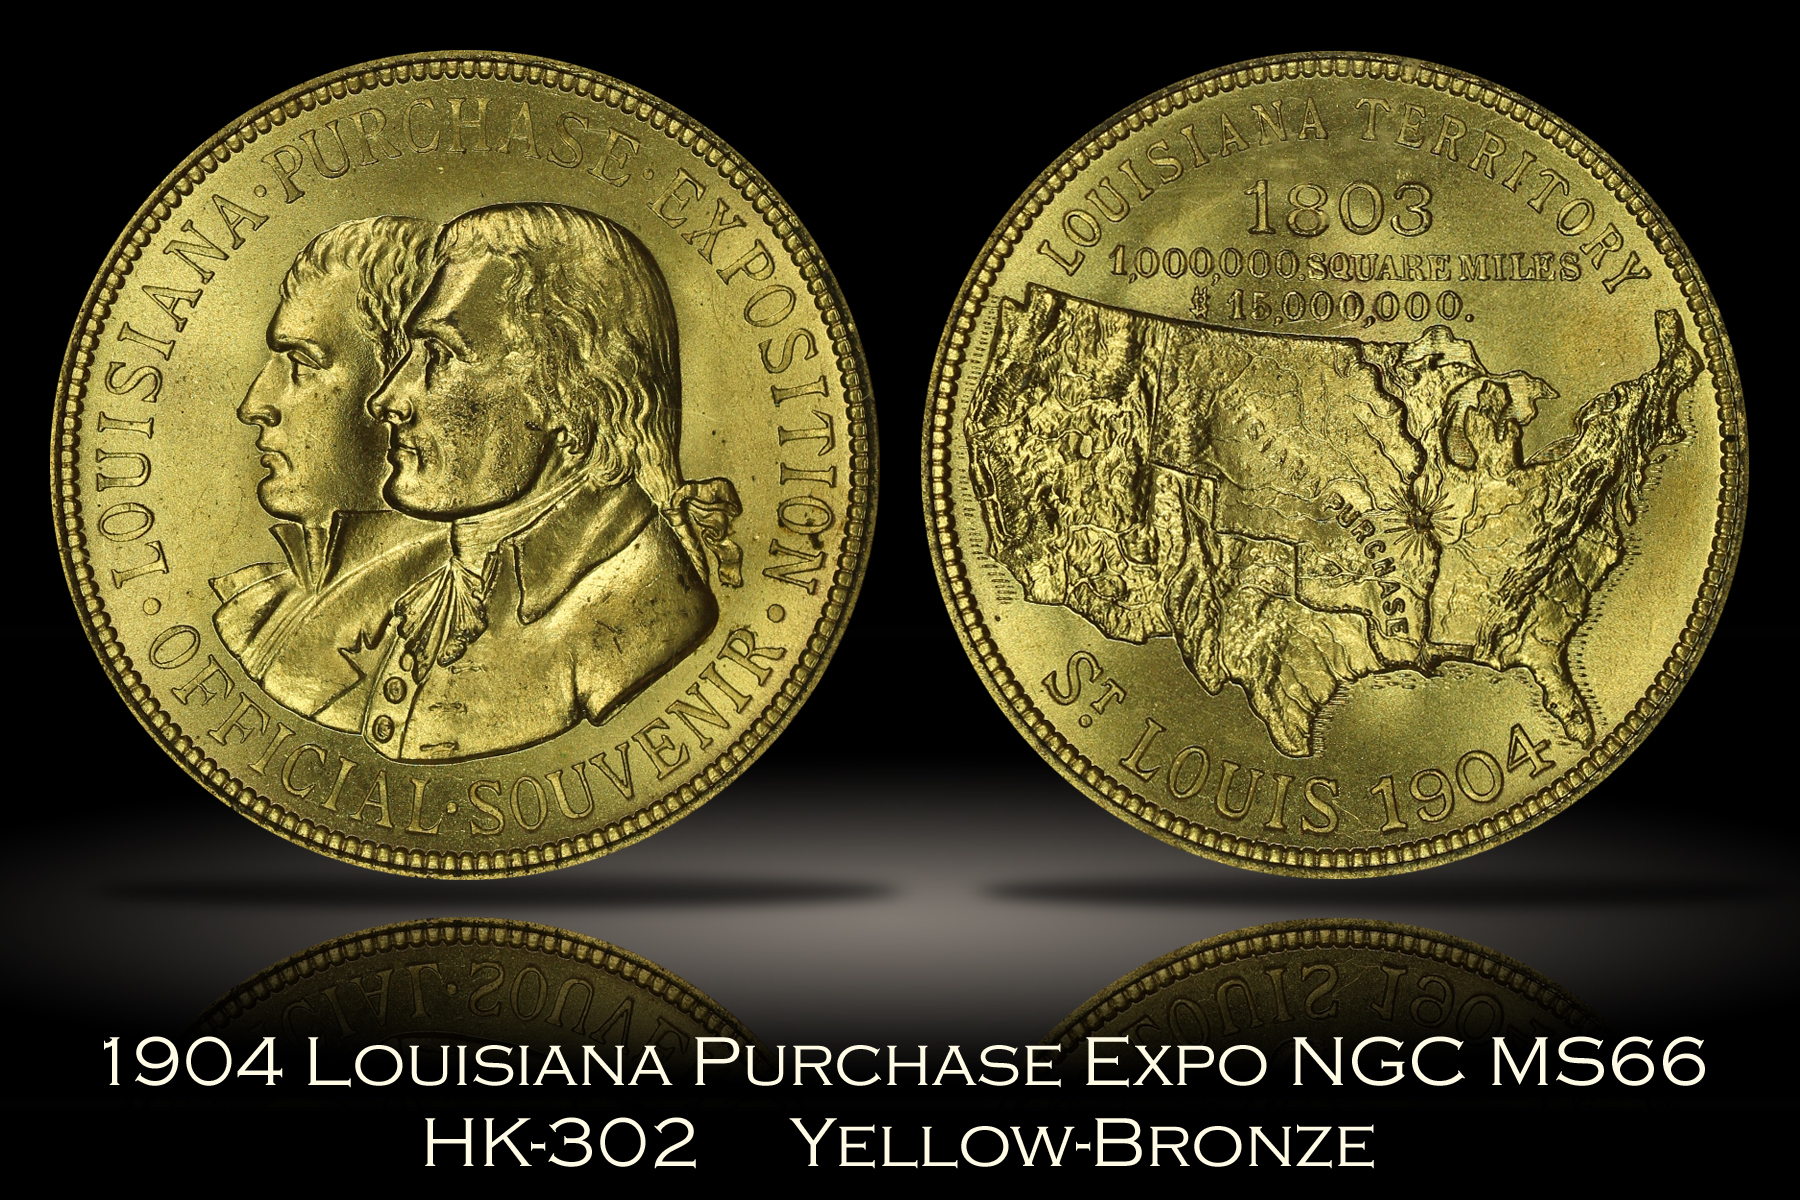 1904 Louisiana Purchase Expo Official Medal HK-302 NGC MS66